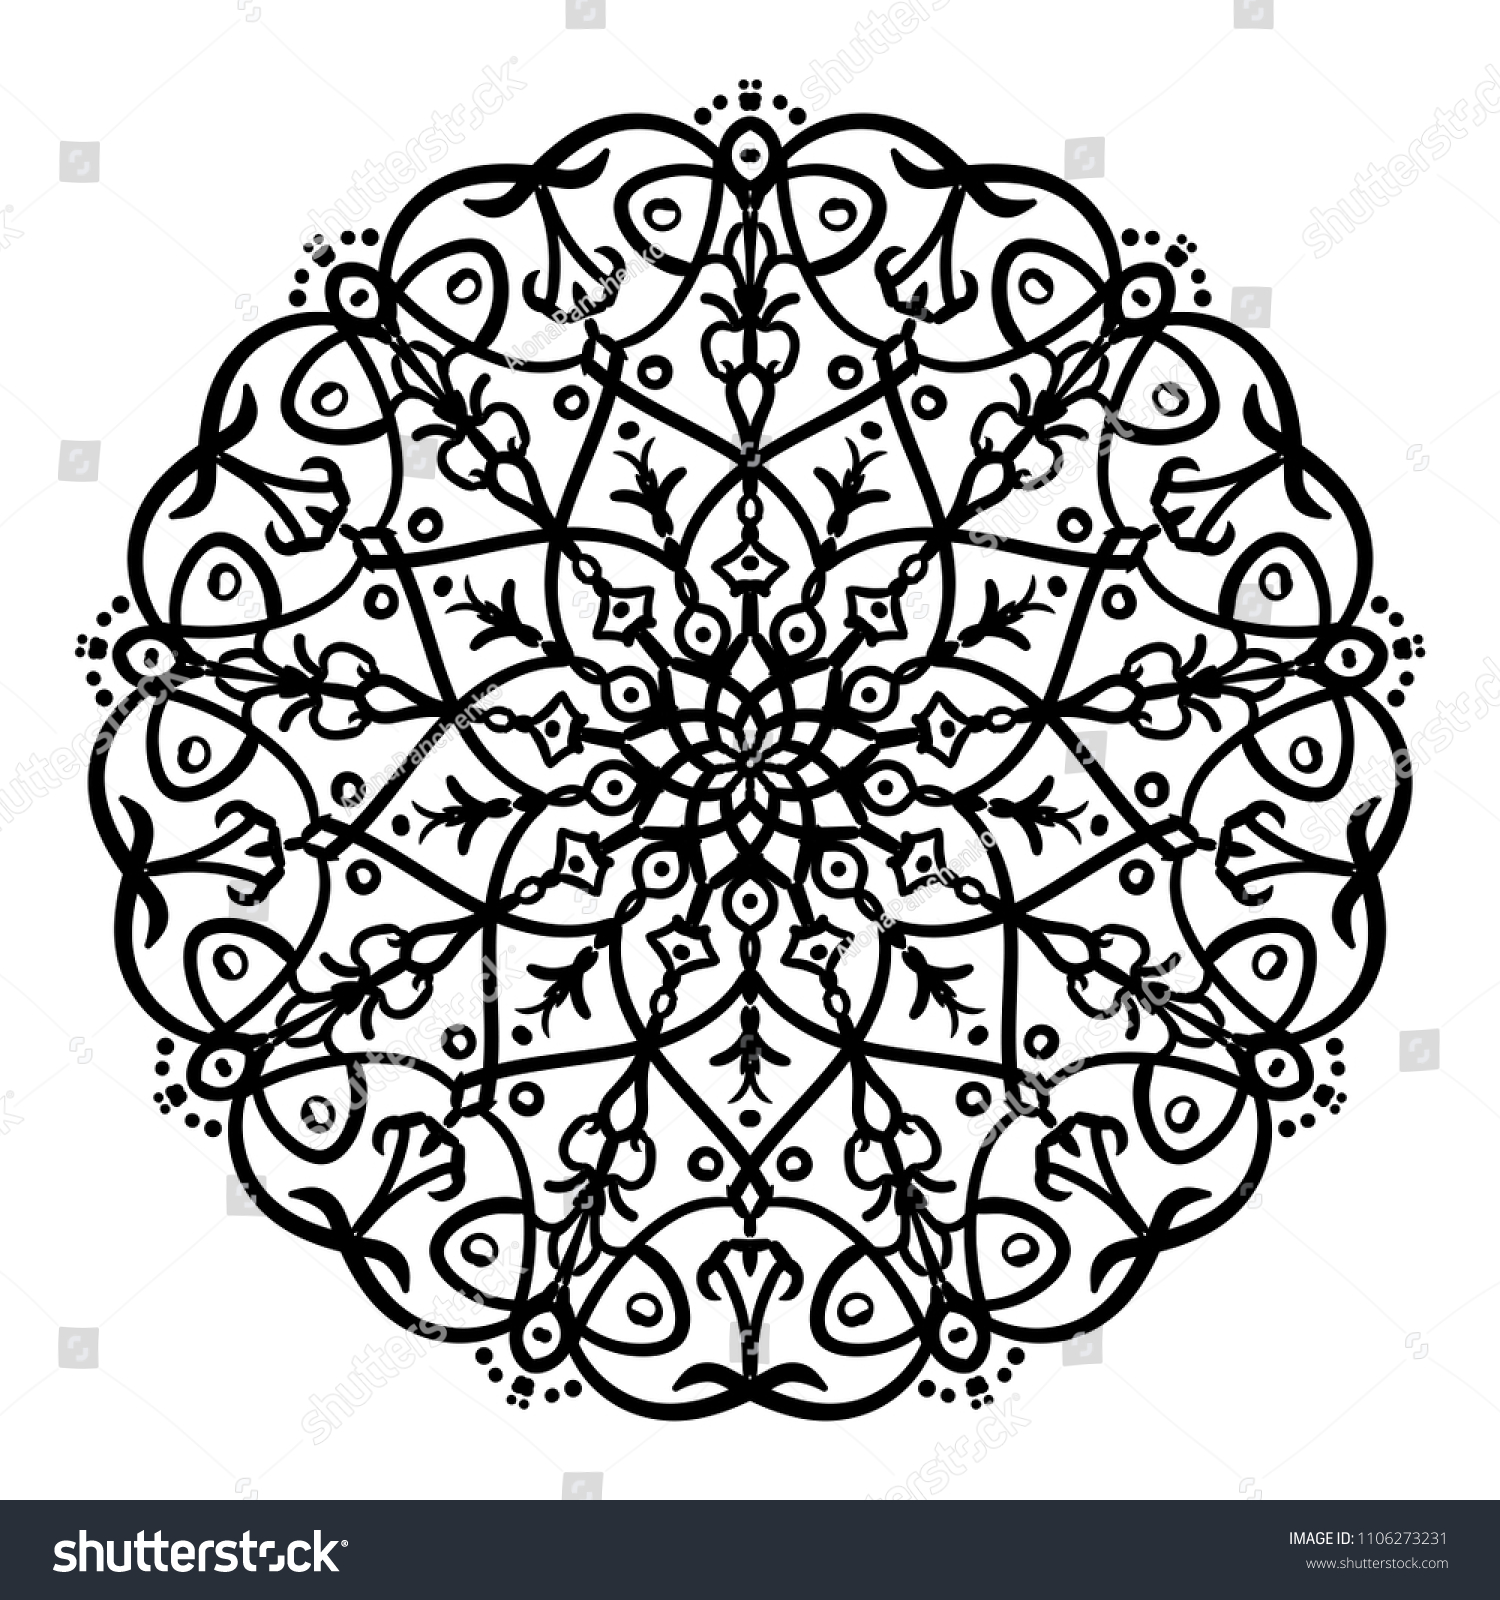 Mandala Design Vintage Decorative Design Elements Round Ornaments Oriental Pattern,